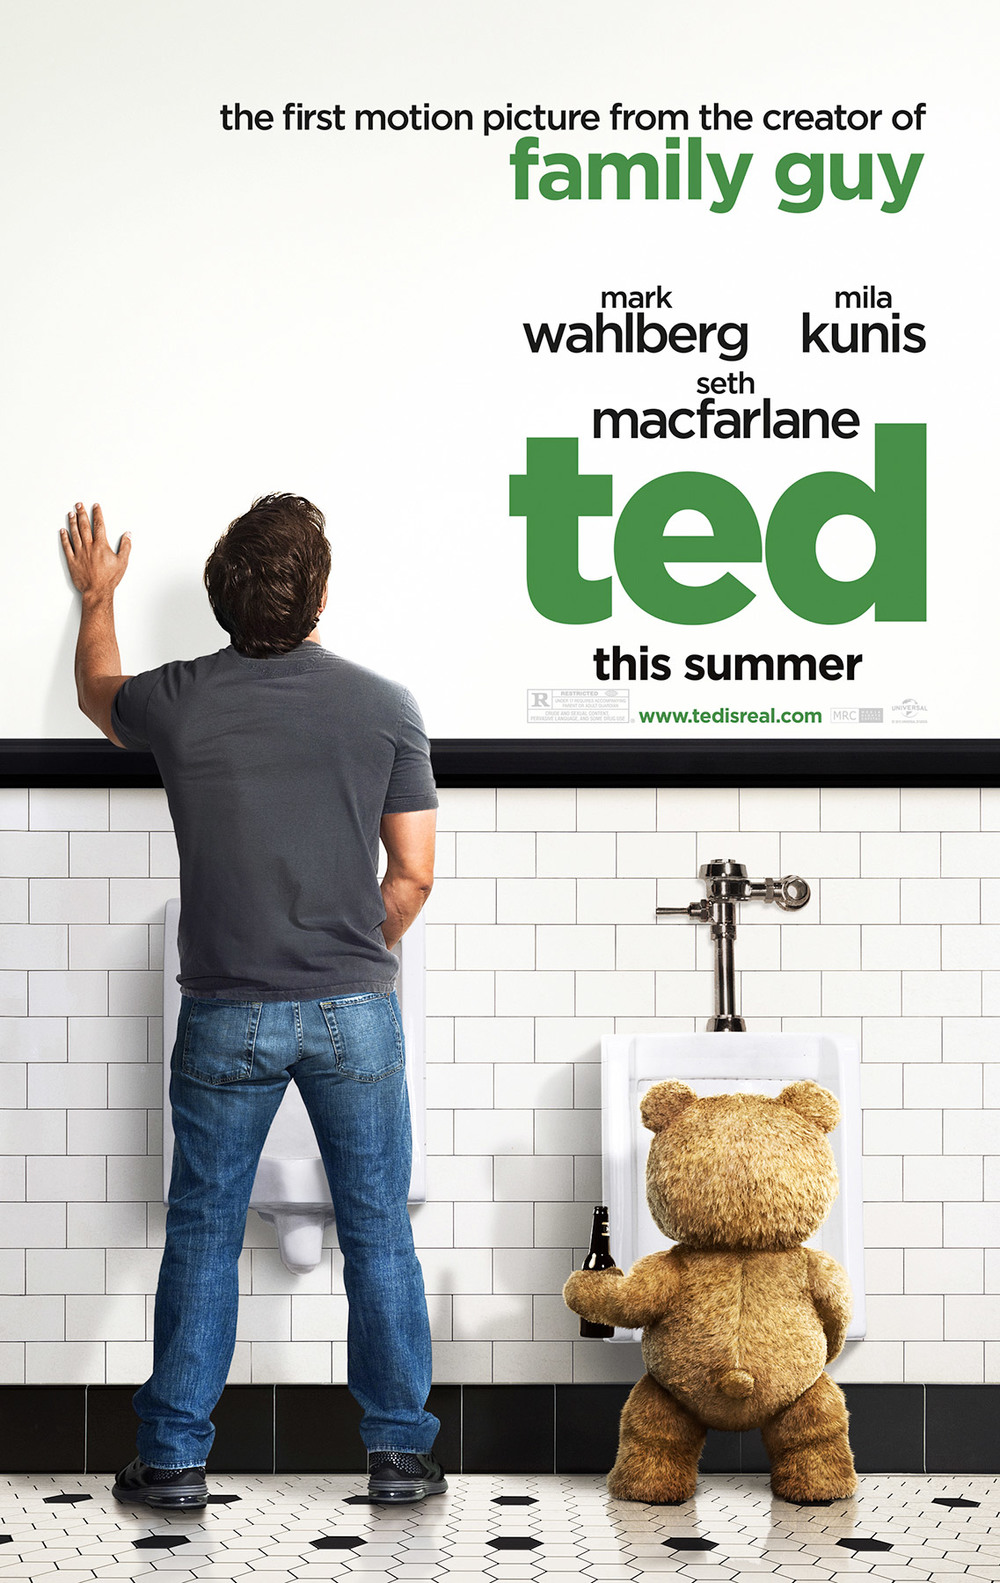 ted_movie_002.jpg